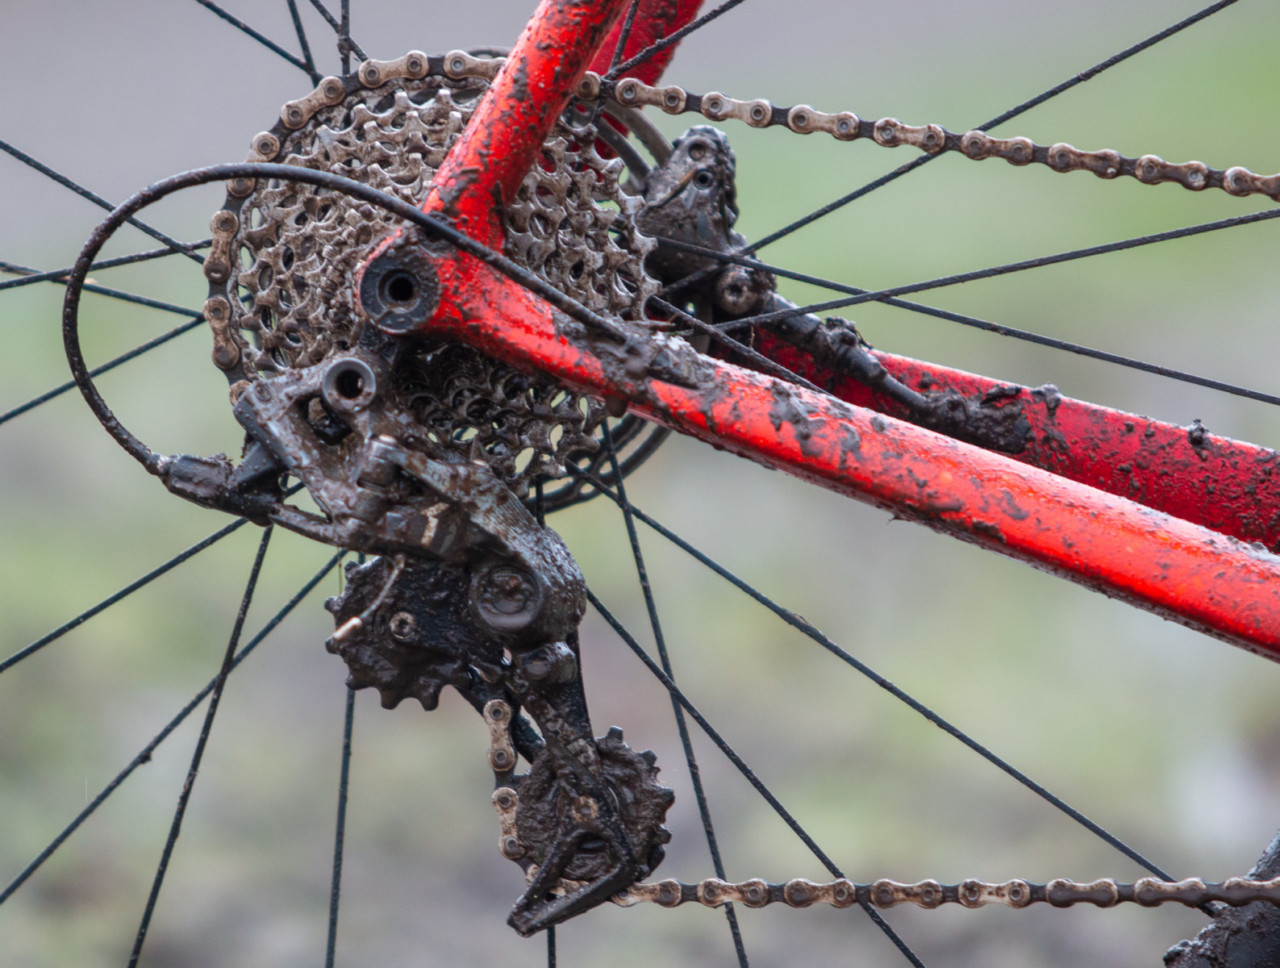 Myrah's Force 1 rear derailleur uses a clutch to enhance chain retention and reduce chain slap. Don Myrah's Ibis Hakka MX. 2019 USA Cycling Cyclocross National Championships bike profiles, Lakewood, WA. © A. Yee / Cyclocross Magazine